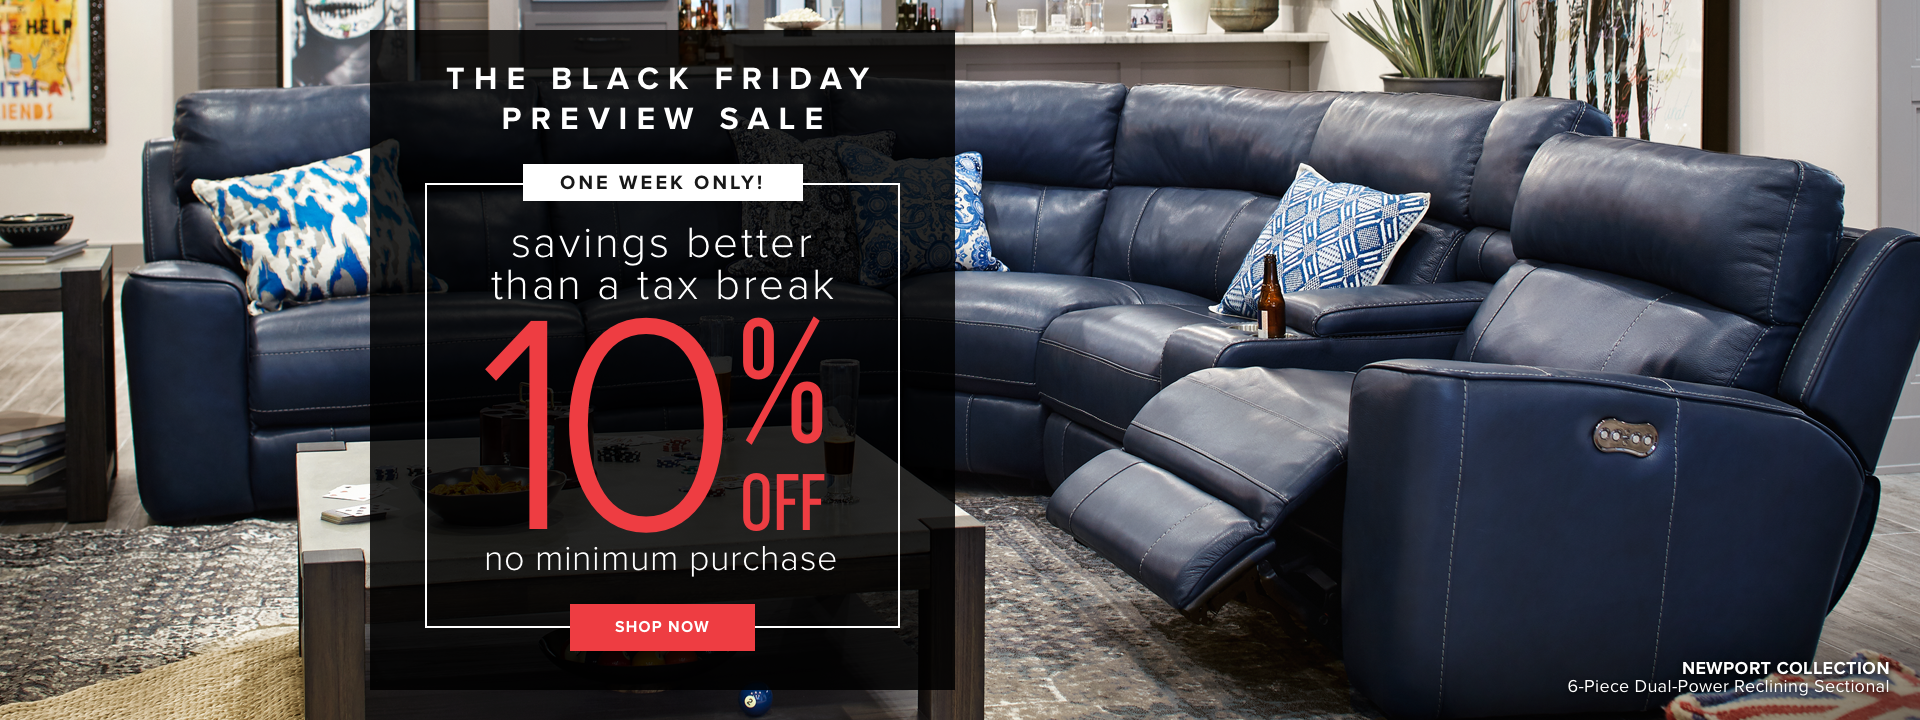 one week only | the black friday preview sale | savings better than a tax break | 10% off no minimum purchase | shop now